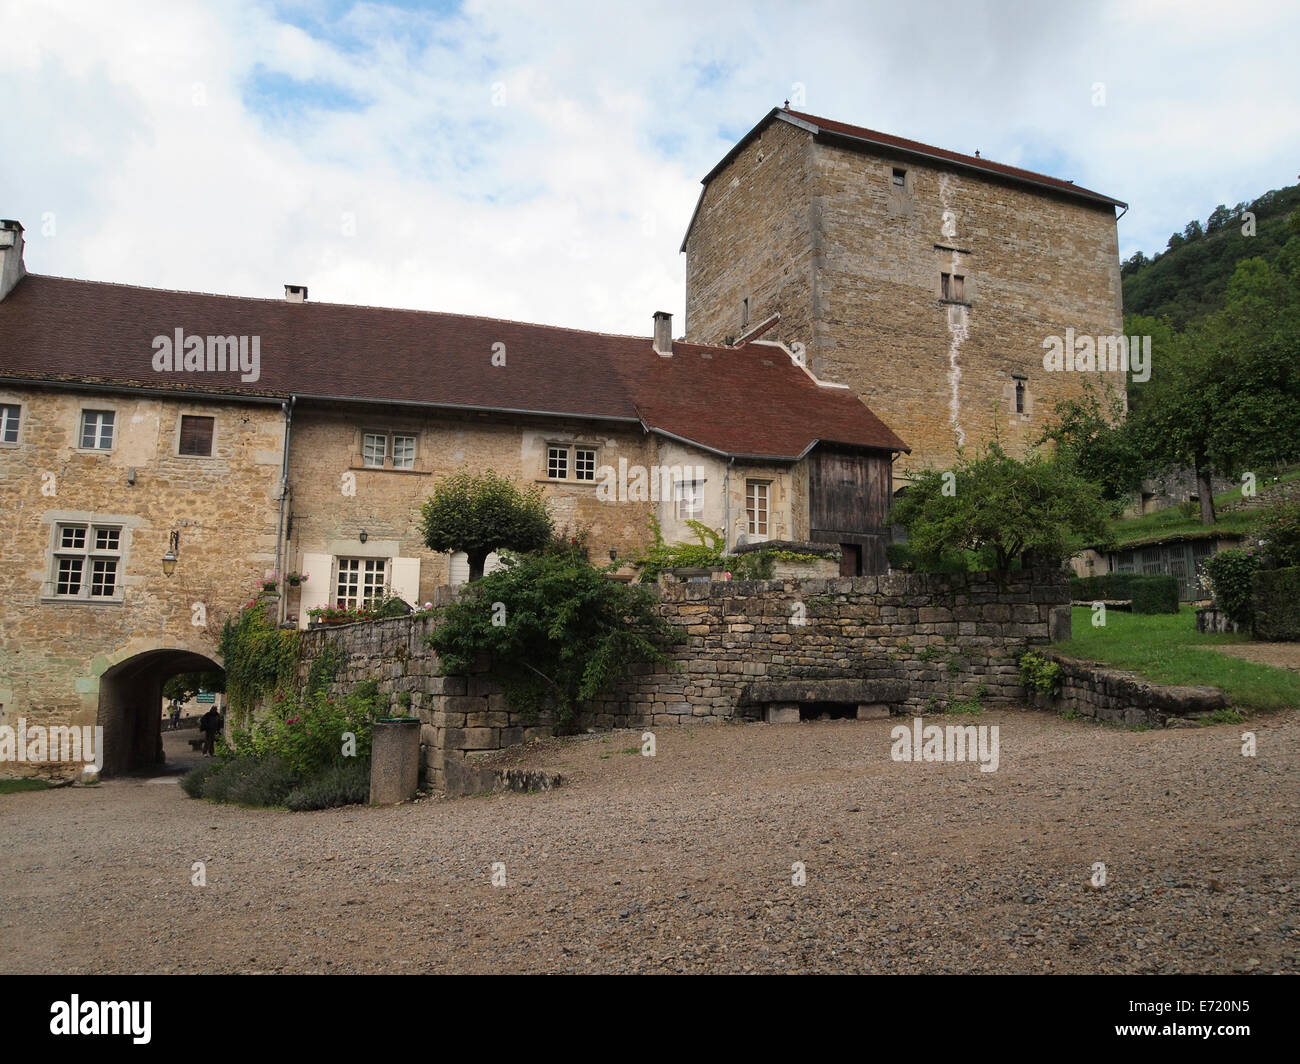 Baume les Messieurs is considered one of the most beautiful villages in France. Jura region - Stock Image